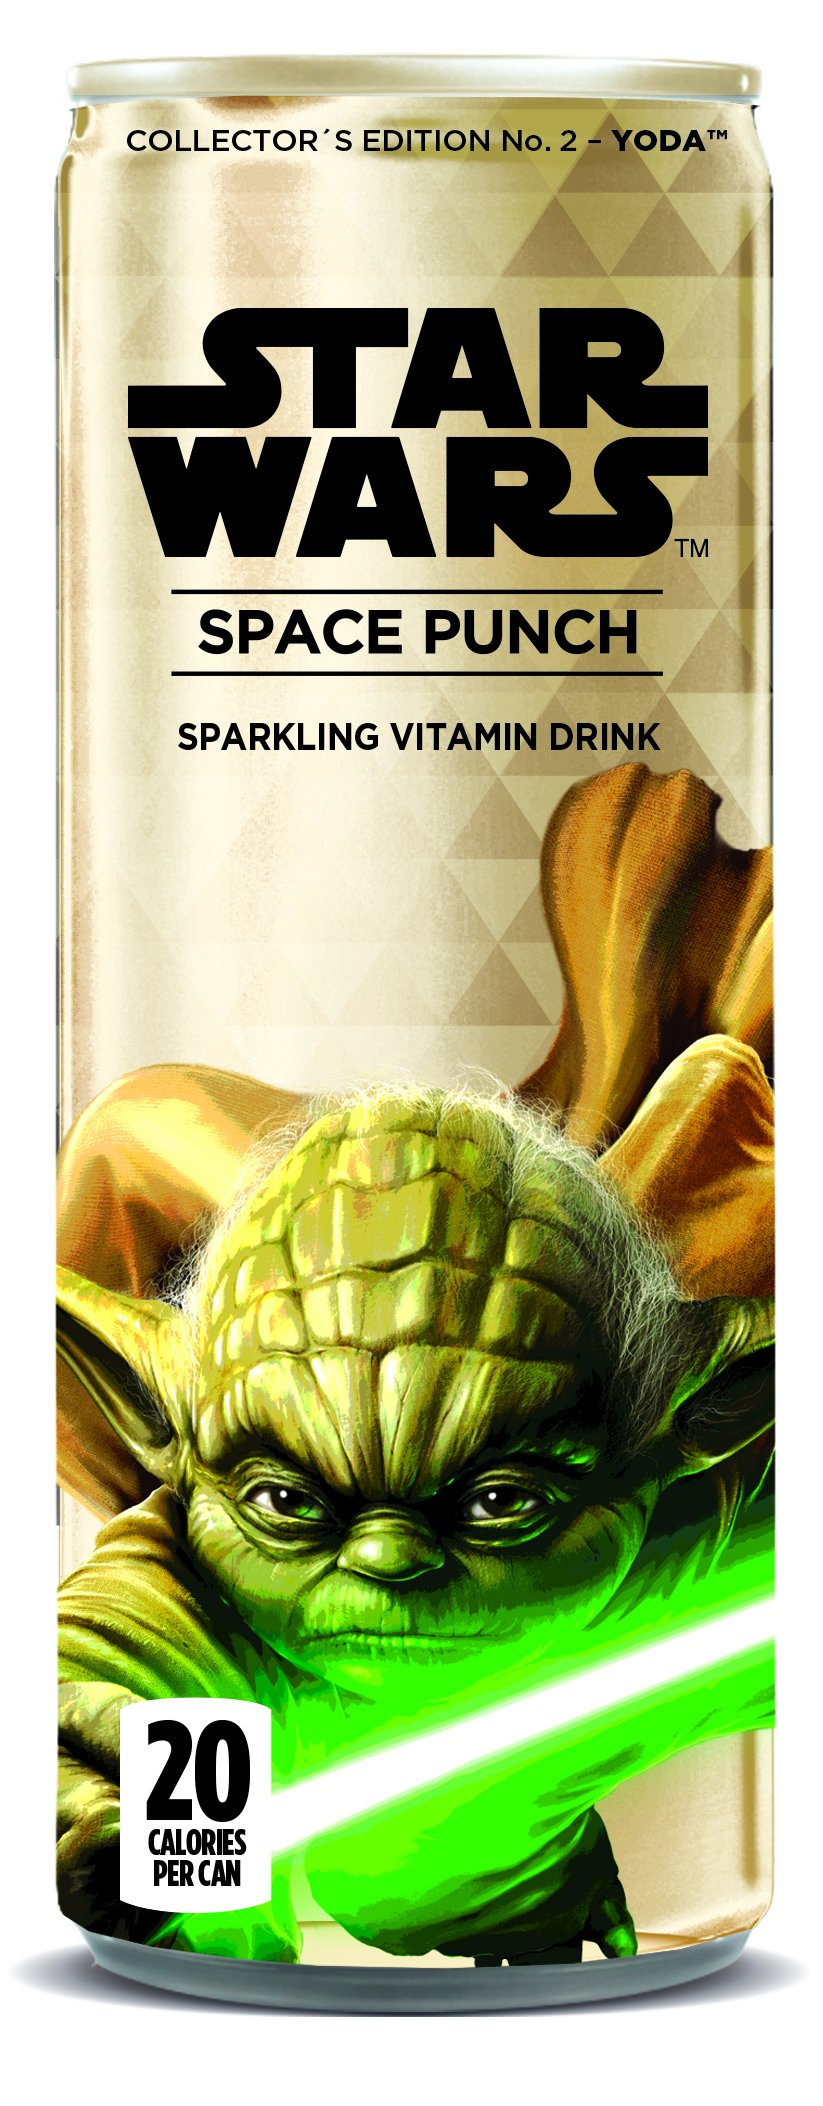 Star Wars Space Punch Sparkling Vitamin Drink, Collectors Edition No.2- Yoda, 12 Oz. Cans (Pack of 12)